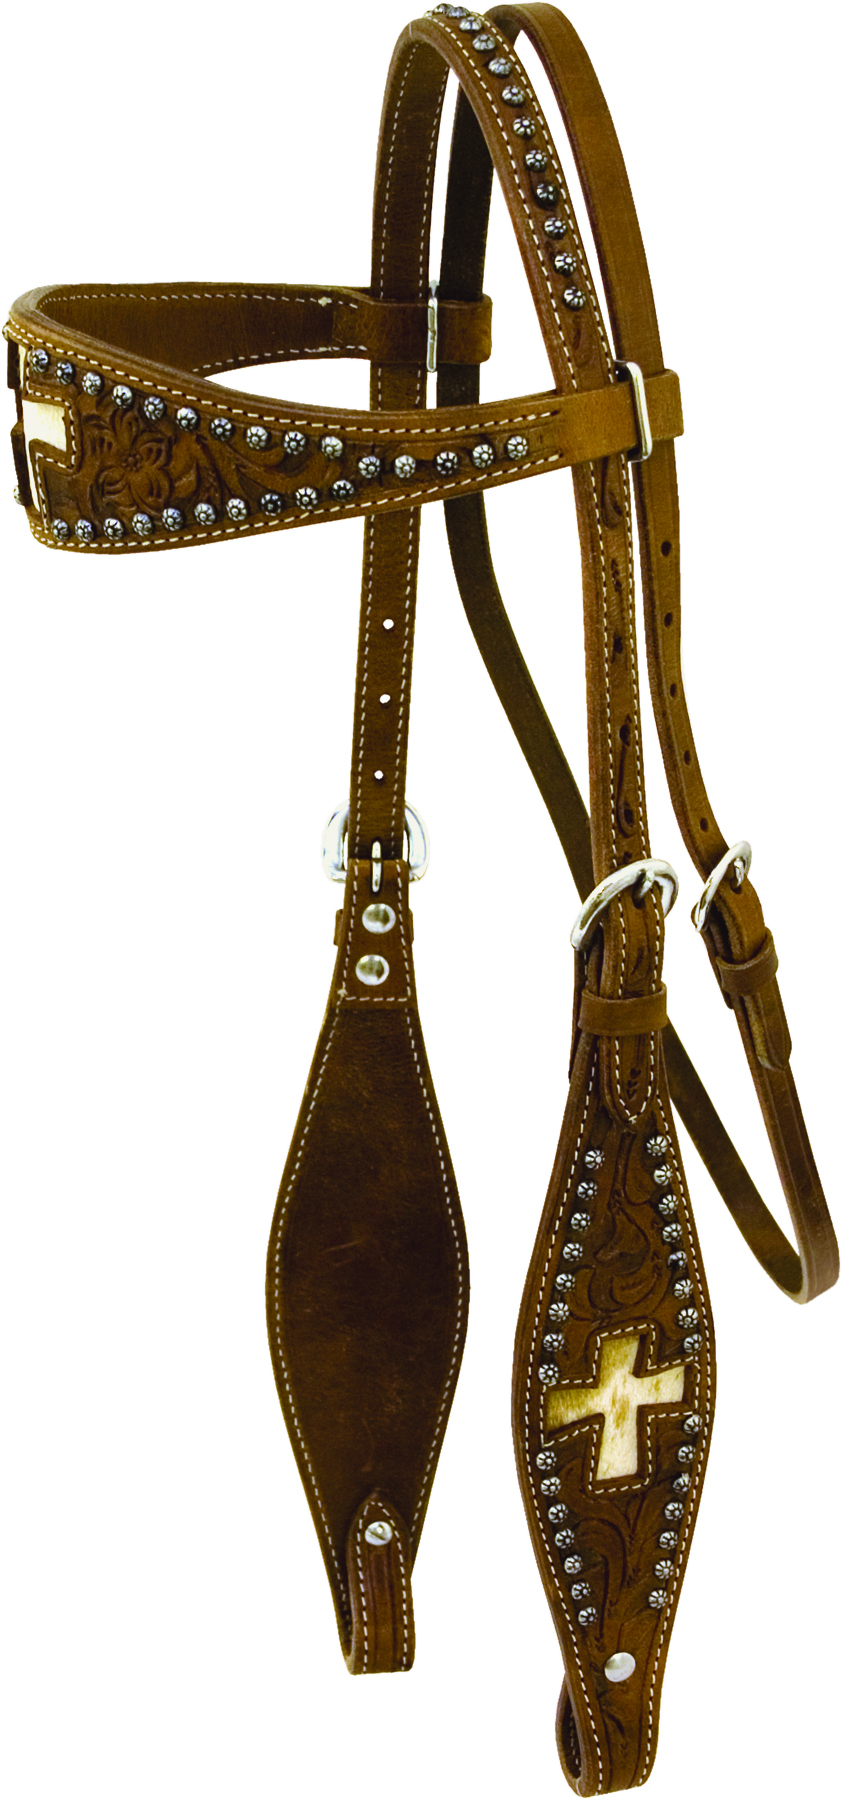 Cowboy Pro bridle with Hair-On with Reins